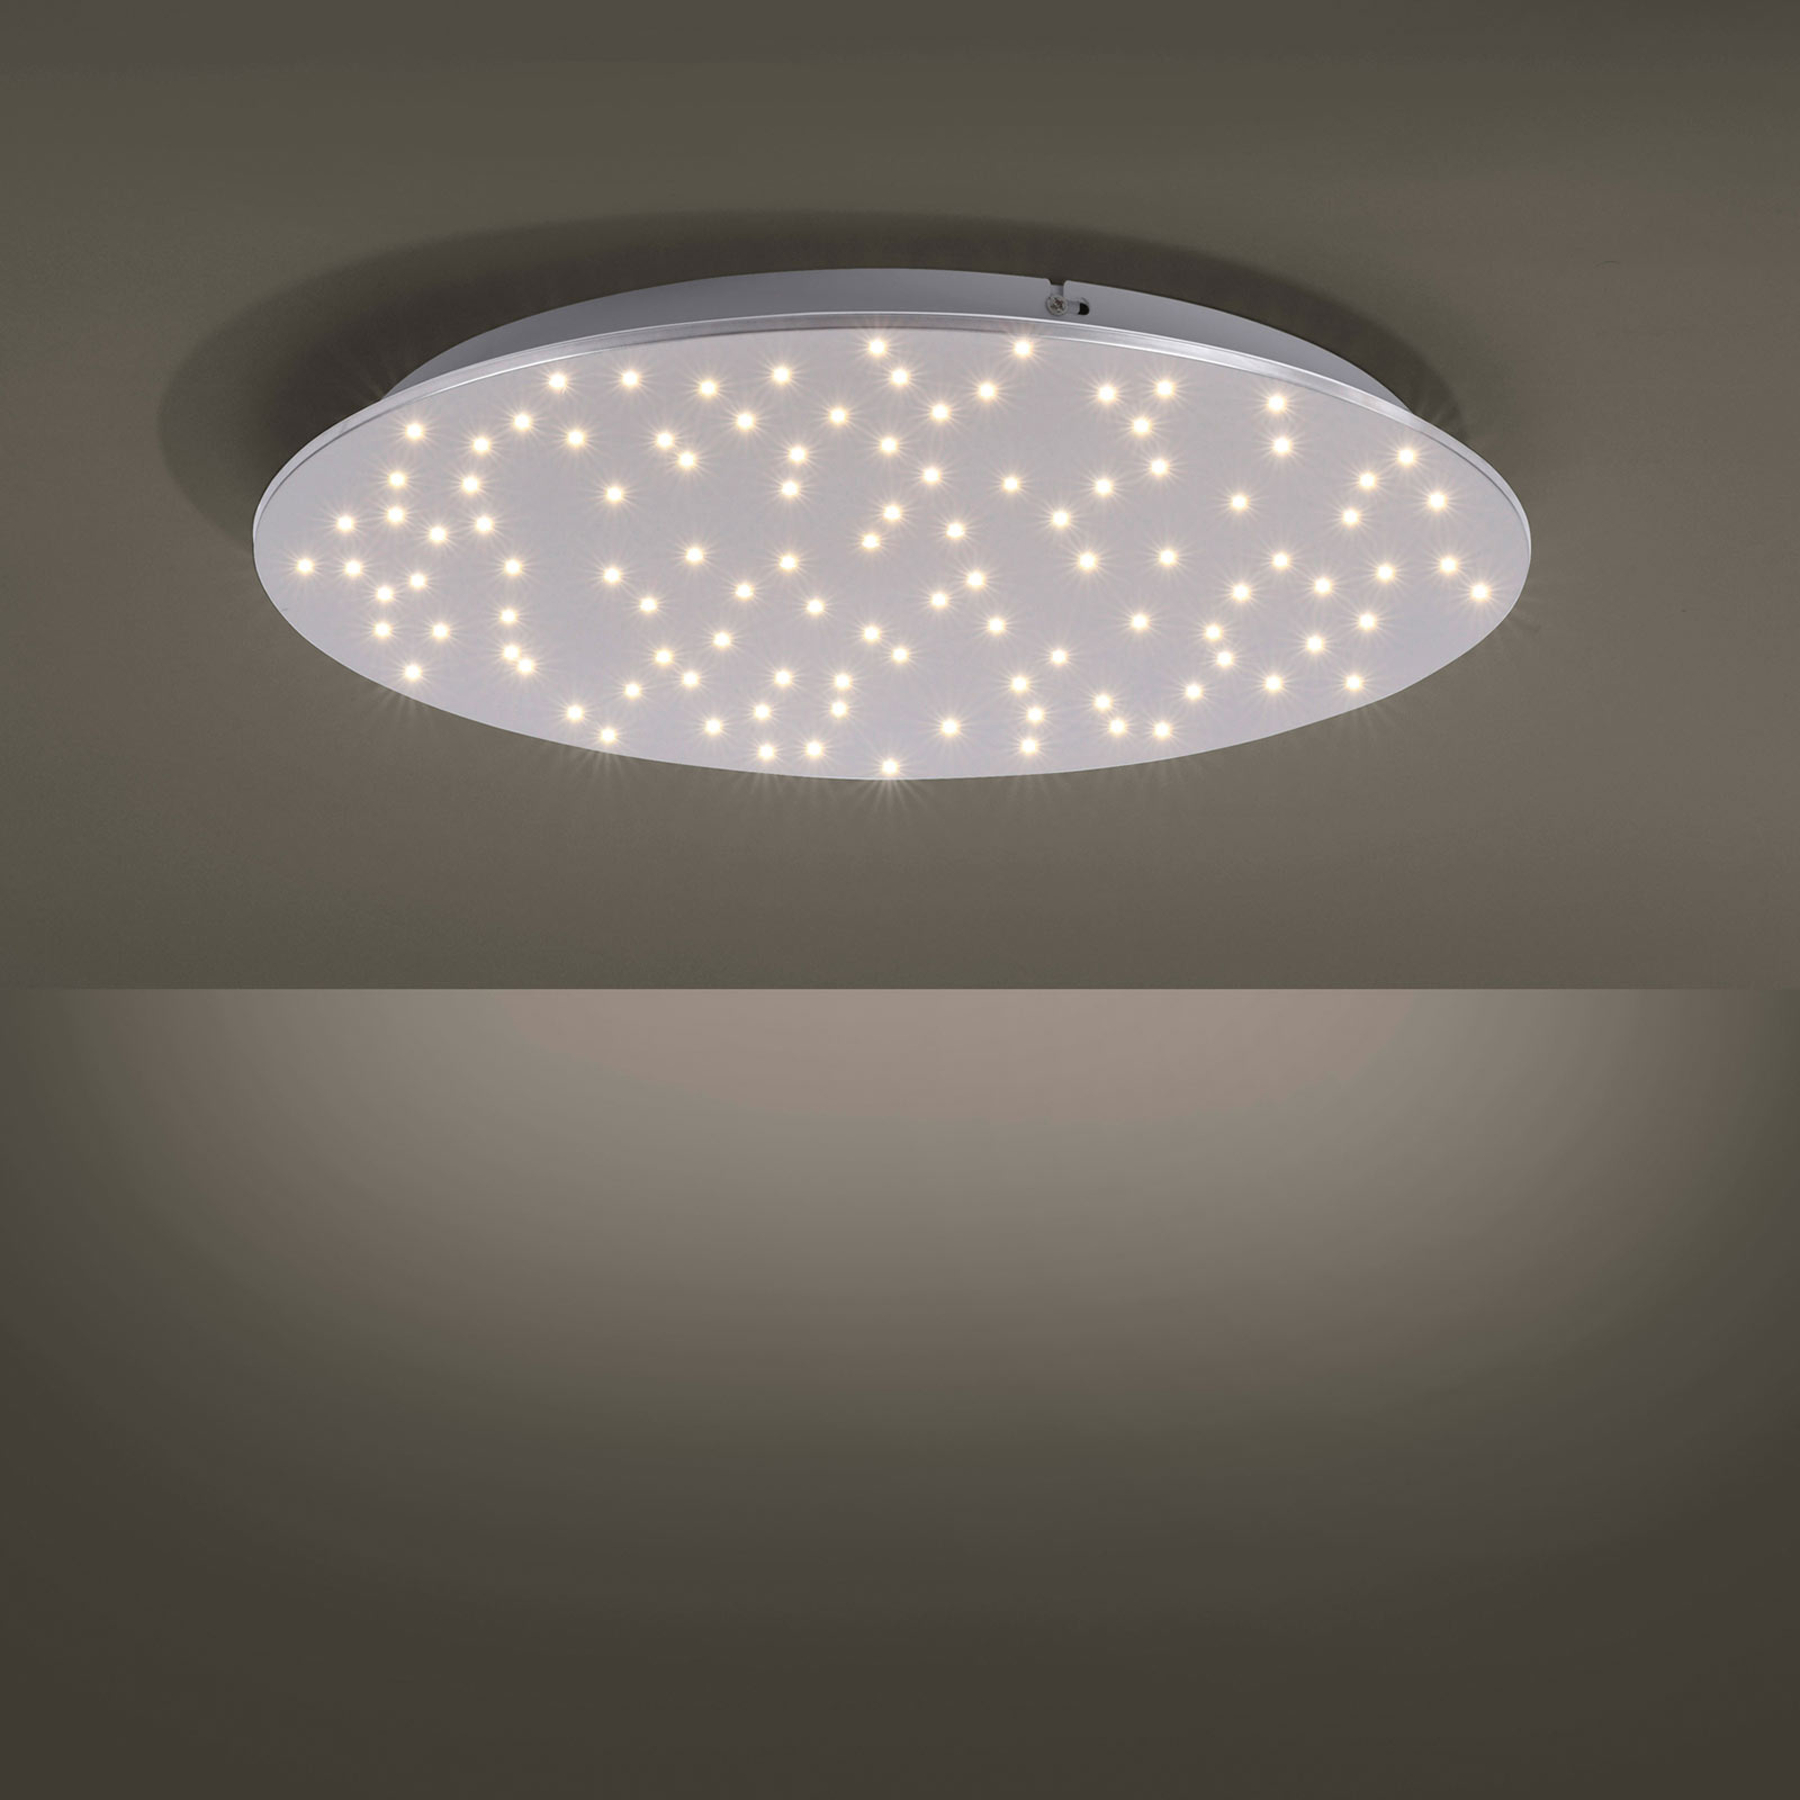 Lampa sufitowa LED Sparkle tunable white, Ø 48 cm